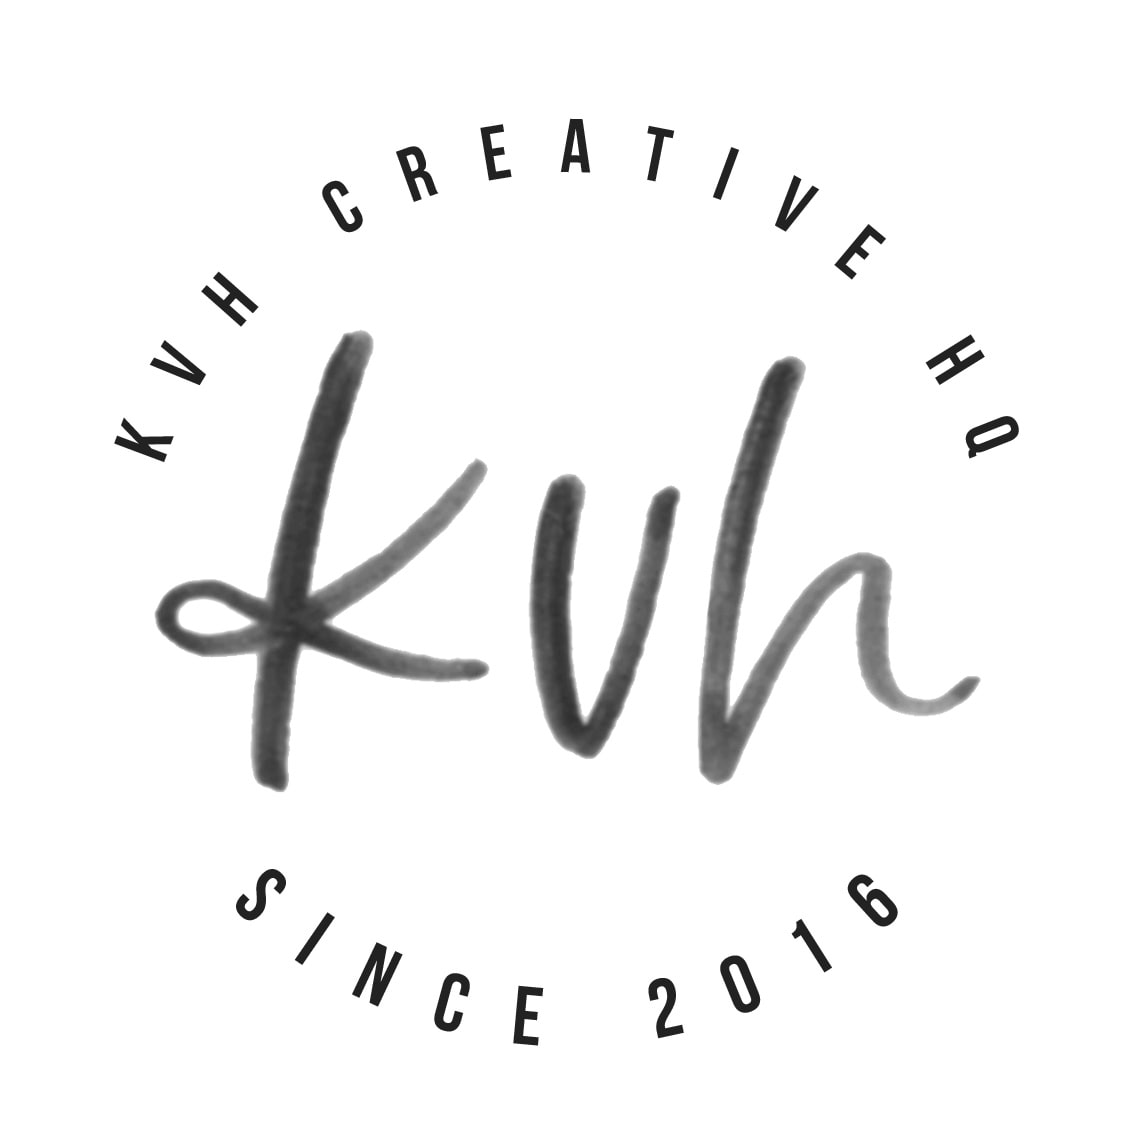 Go to kvh. creative's profile